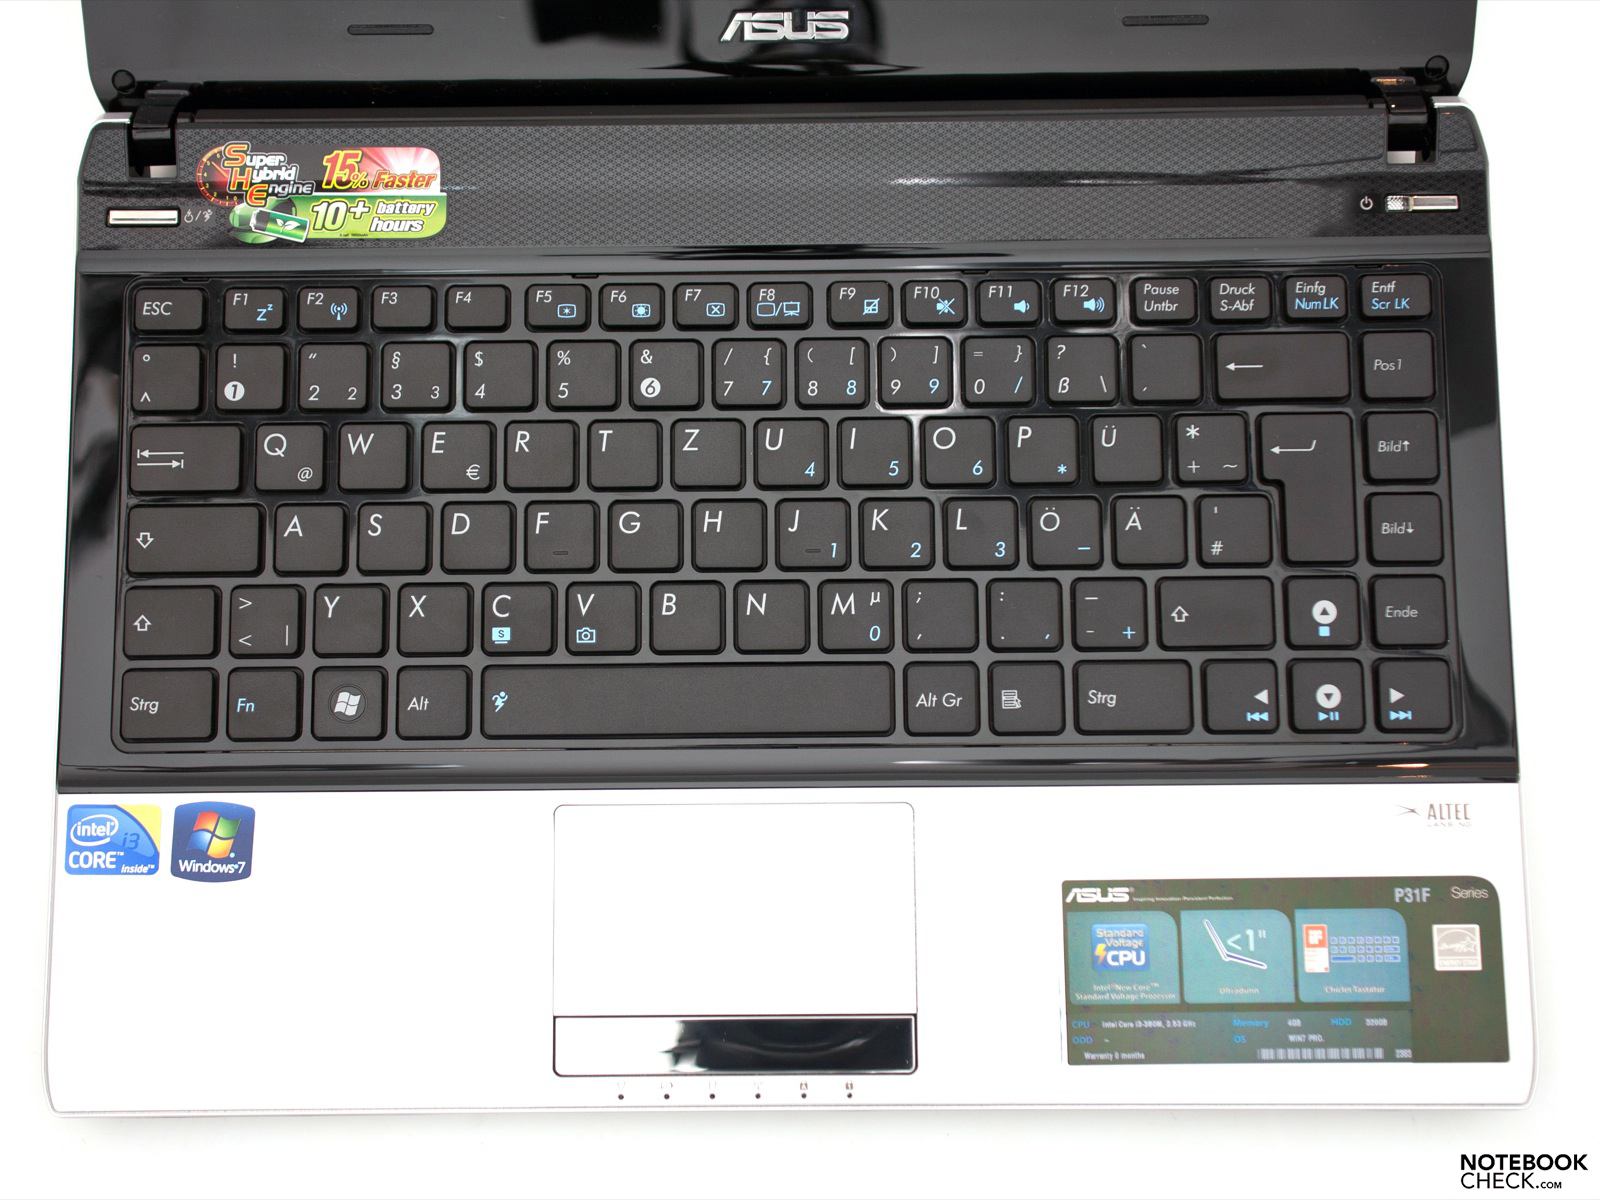 Asus P31F Notebook INF Windows 8 X64 Driver Download